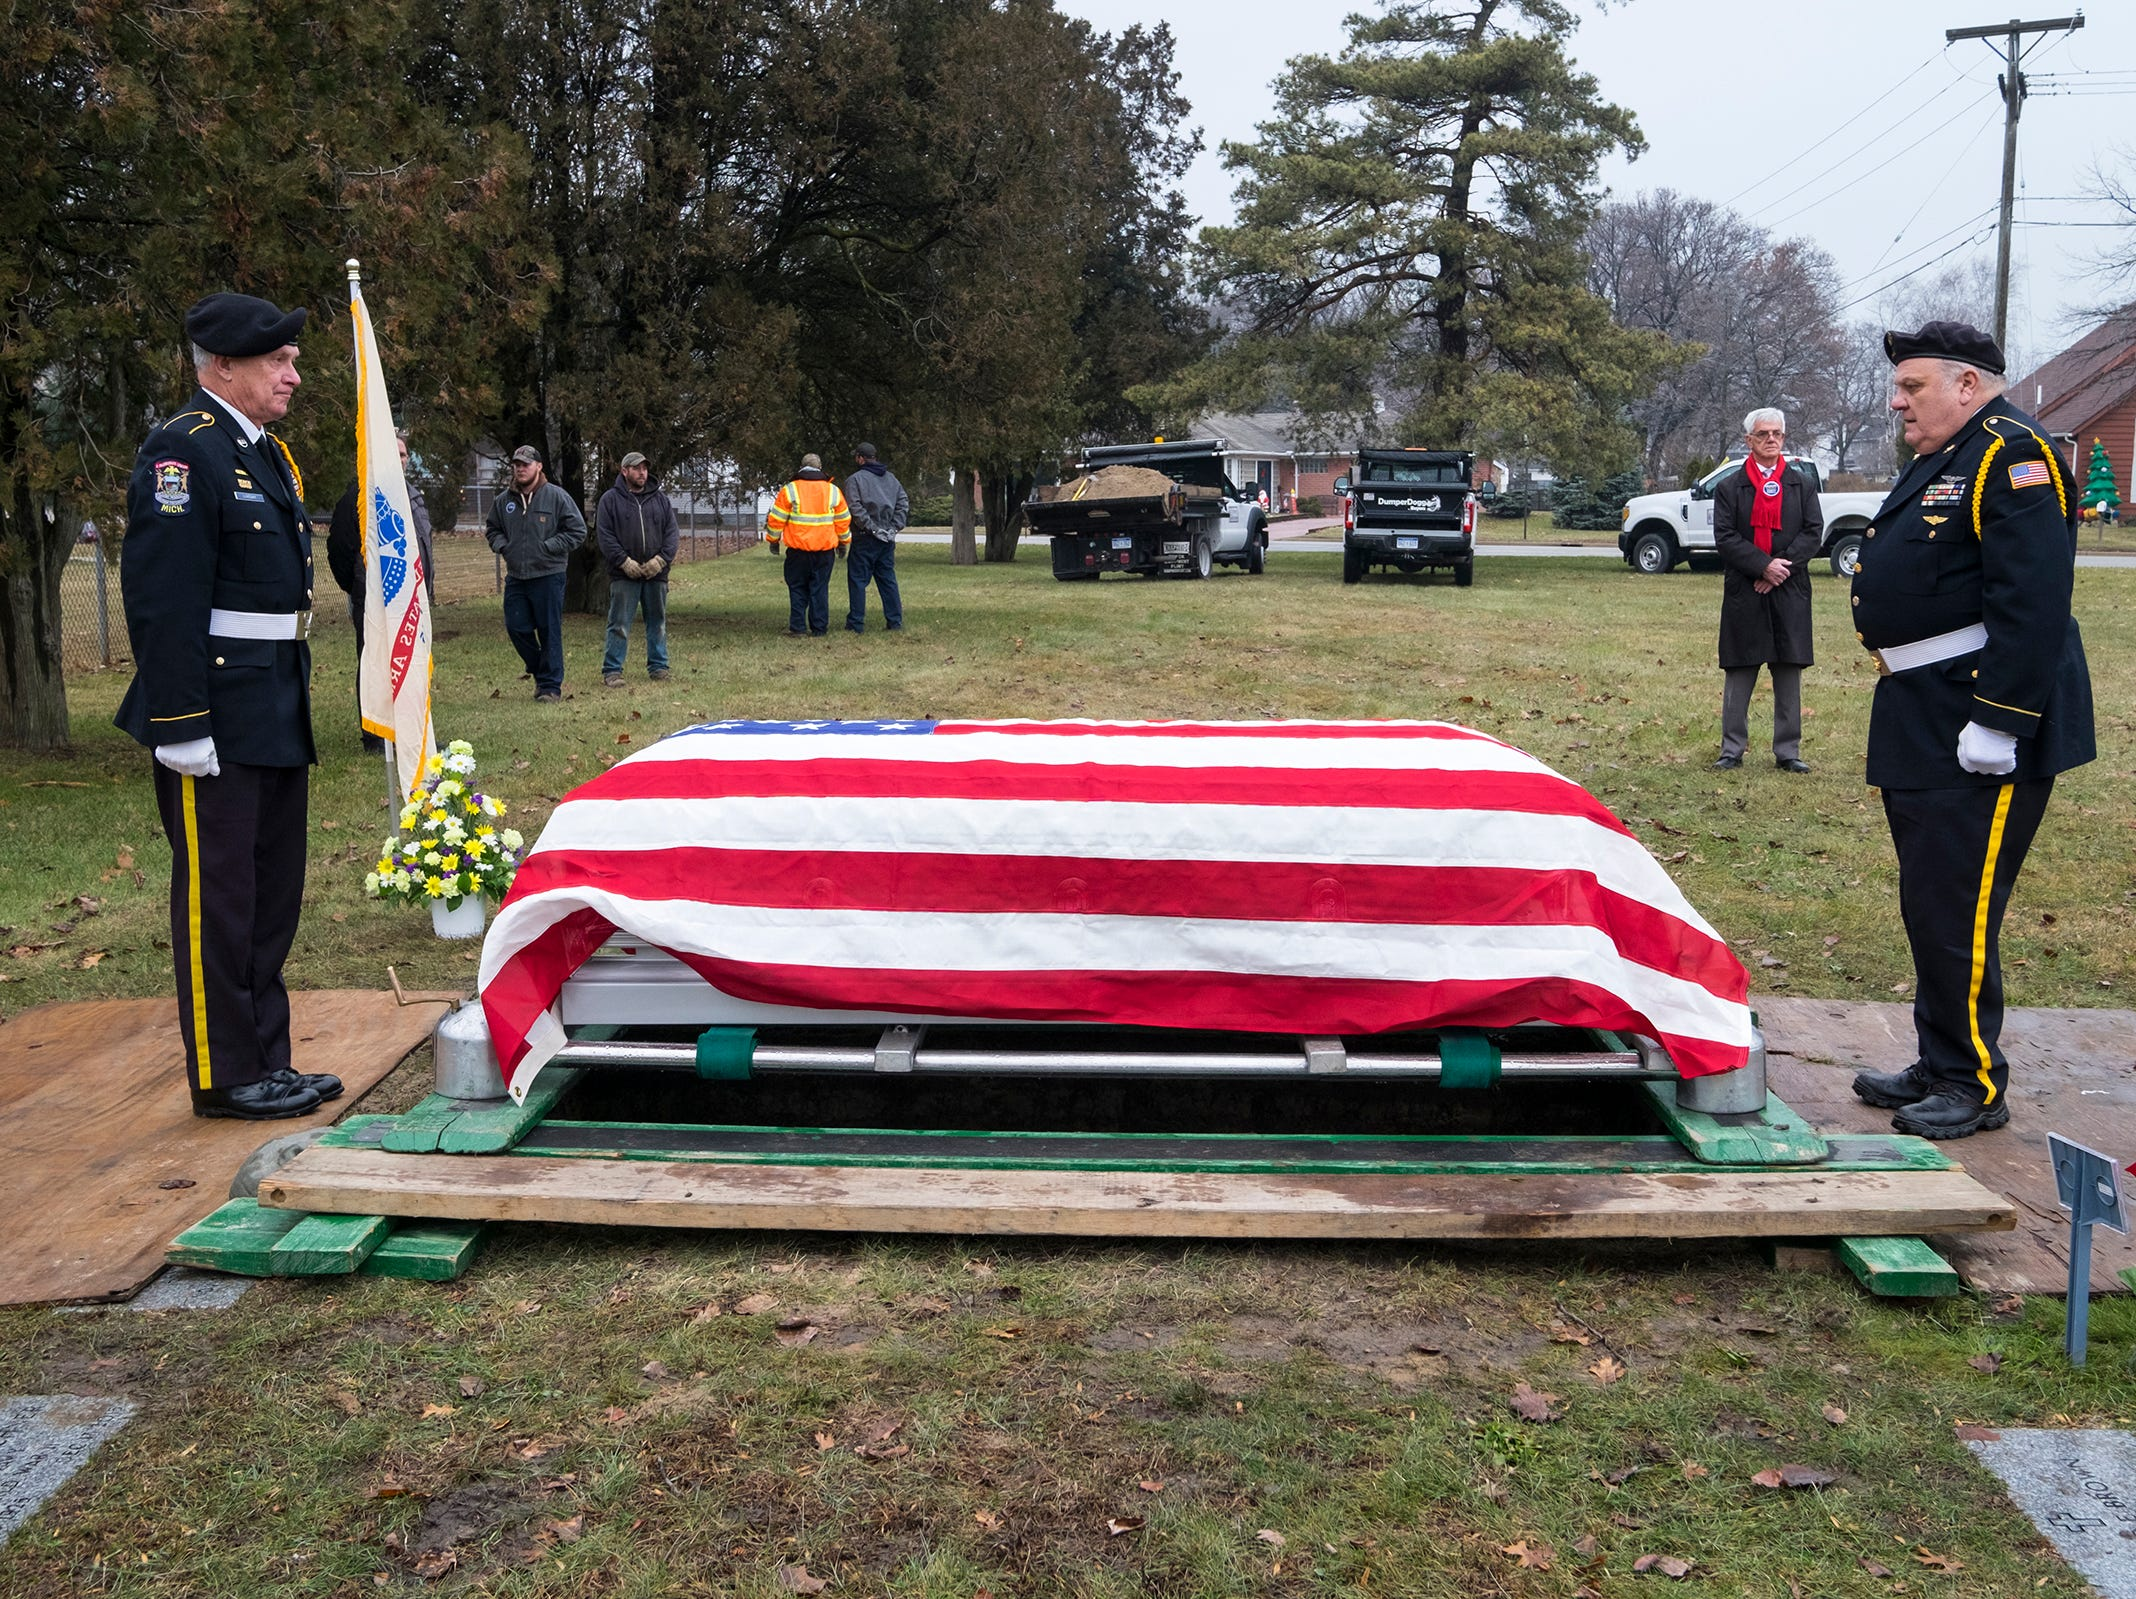 St. Clair County Allied Veterans Council members Bill Livesay, left, and Dave Robinson stand at attention at either end of the casket of Joseph A. Humphries during his funeral Friday, Dec. 14, 2018 at Allied Veterans Cemetery in Fort Gratiot.